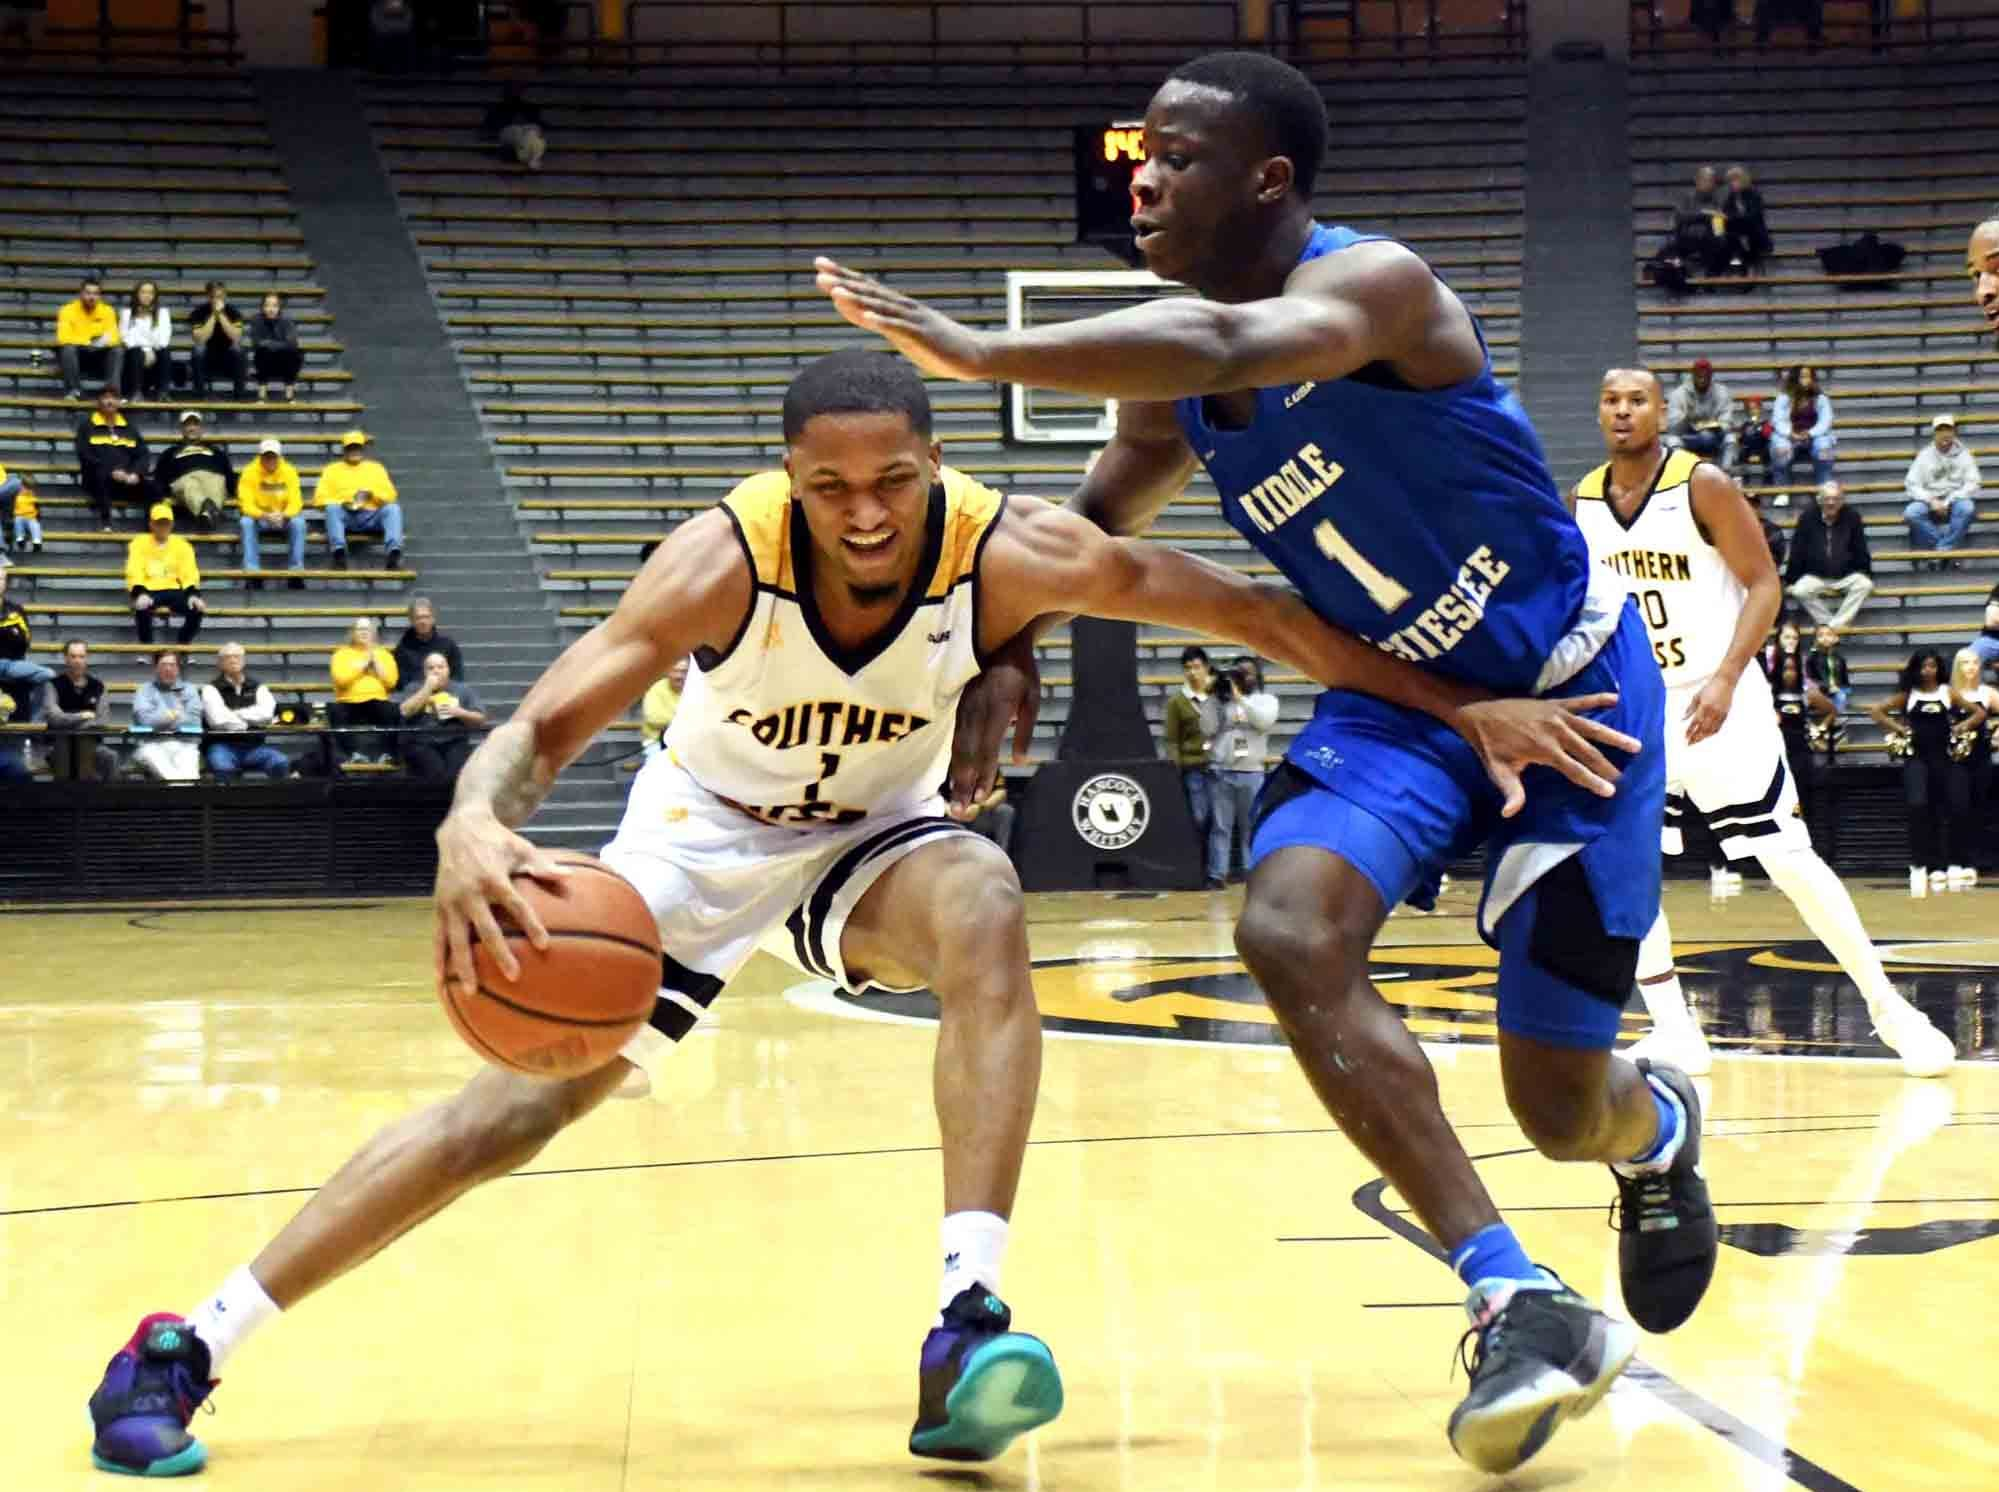 Southern Miss guard Cortez Edwards takes possession of the ball in a  game against Middle Tennessee in Reed Green Coliseum on Thursday, January 10, 2019.